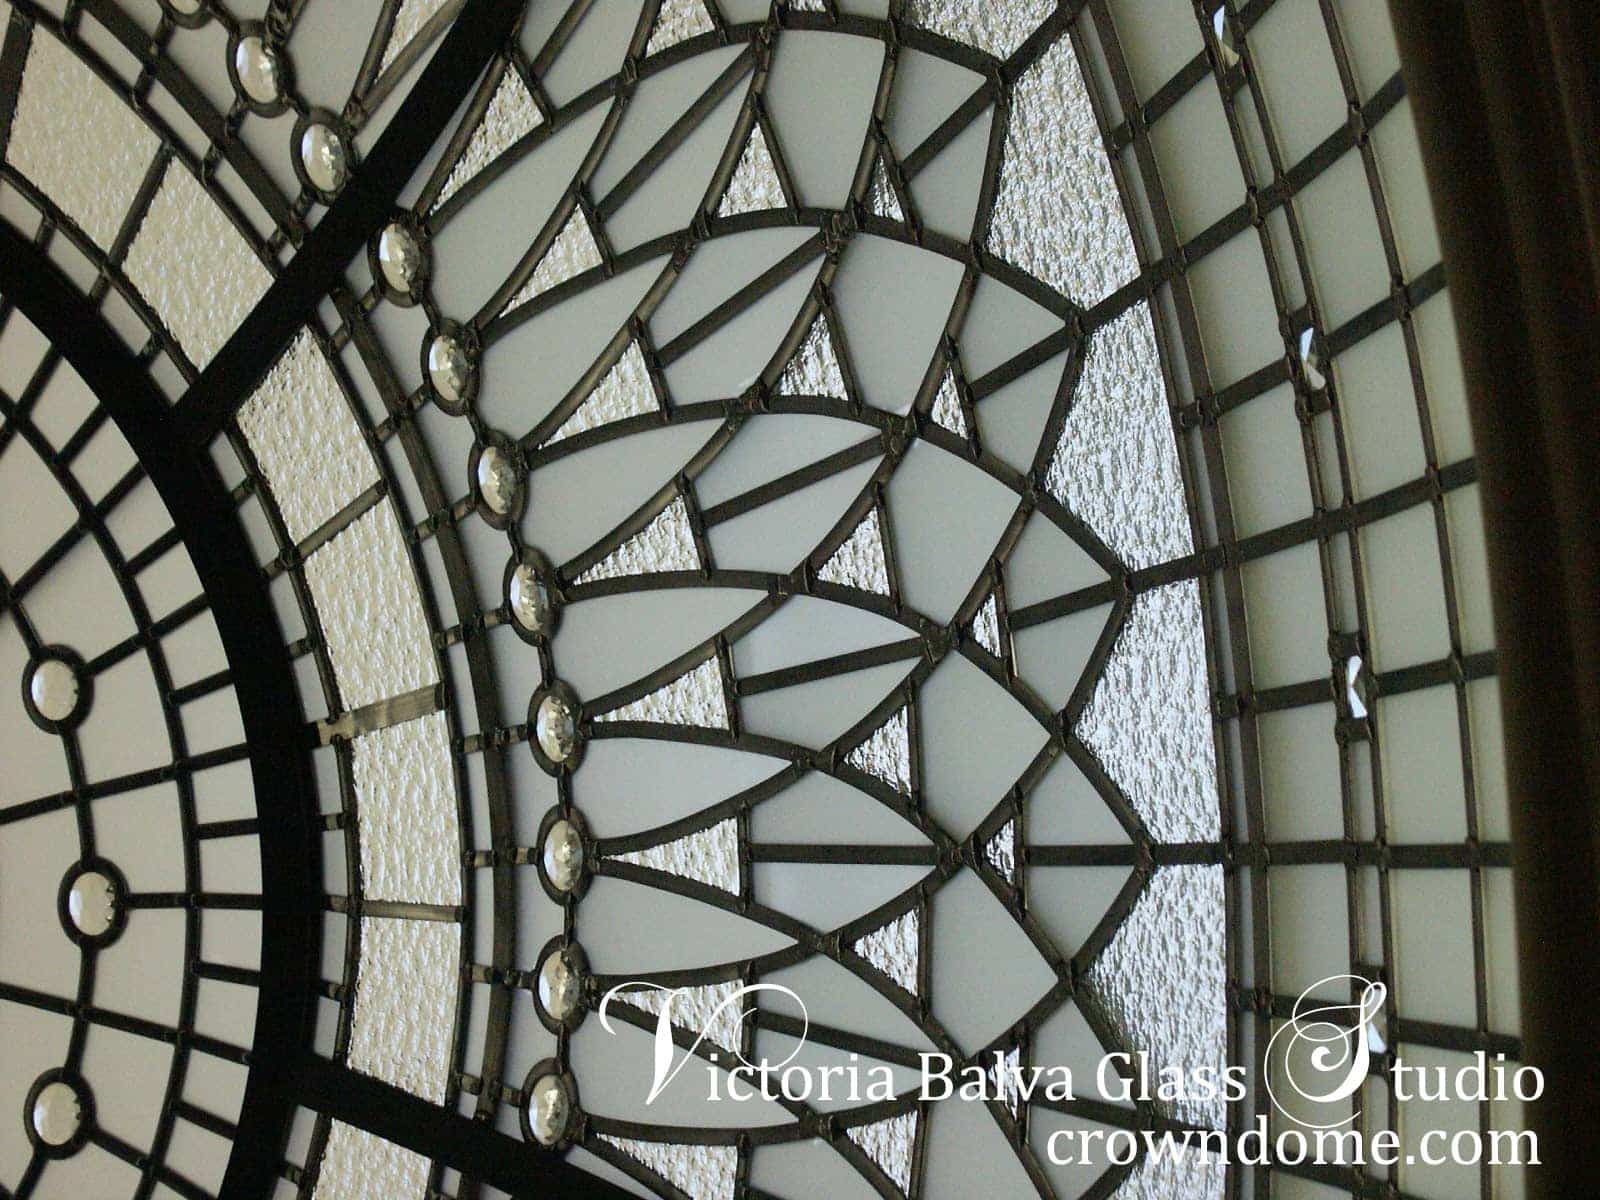 Double-height grand entrance foyer stylish ideas stained leaded glass dome lay light custom-built house in Toronto. Decoration idea decorative glass ceiling with clear beveled and textured glass